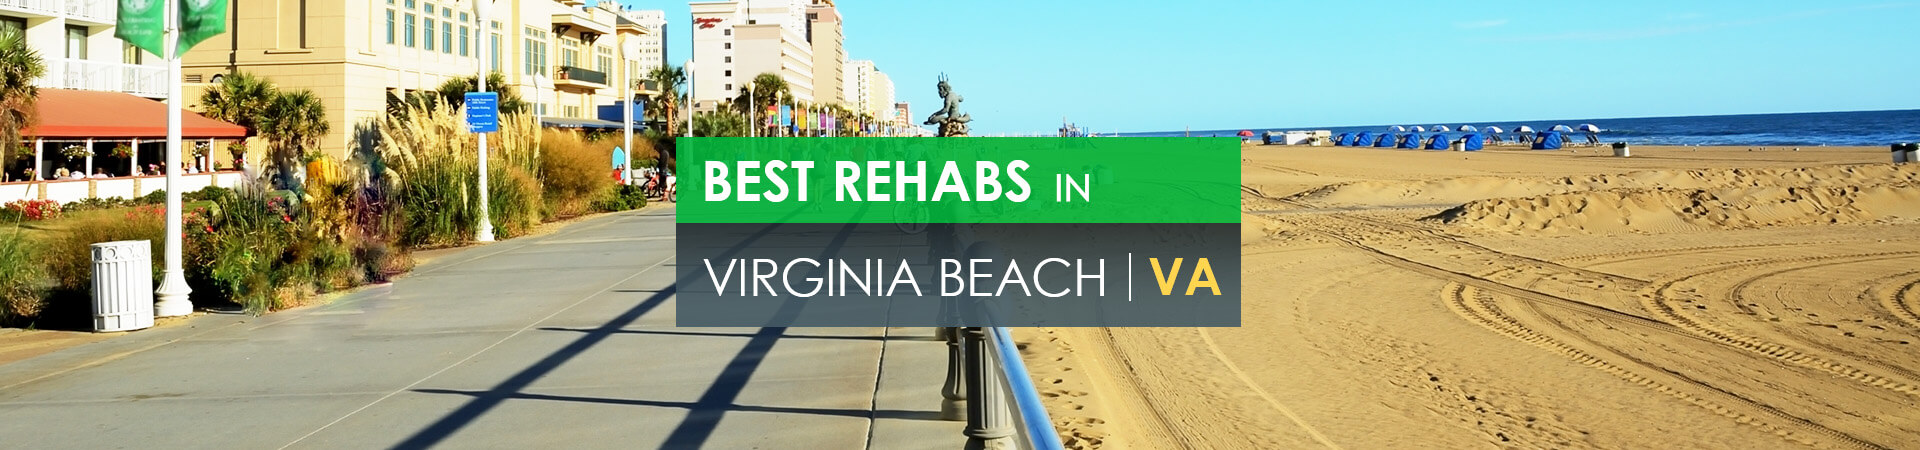 Best rehabs in Virginia Beach, VA